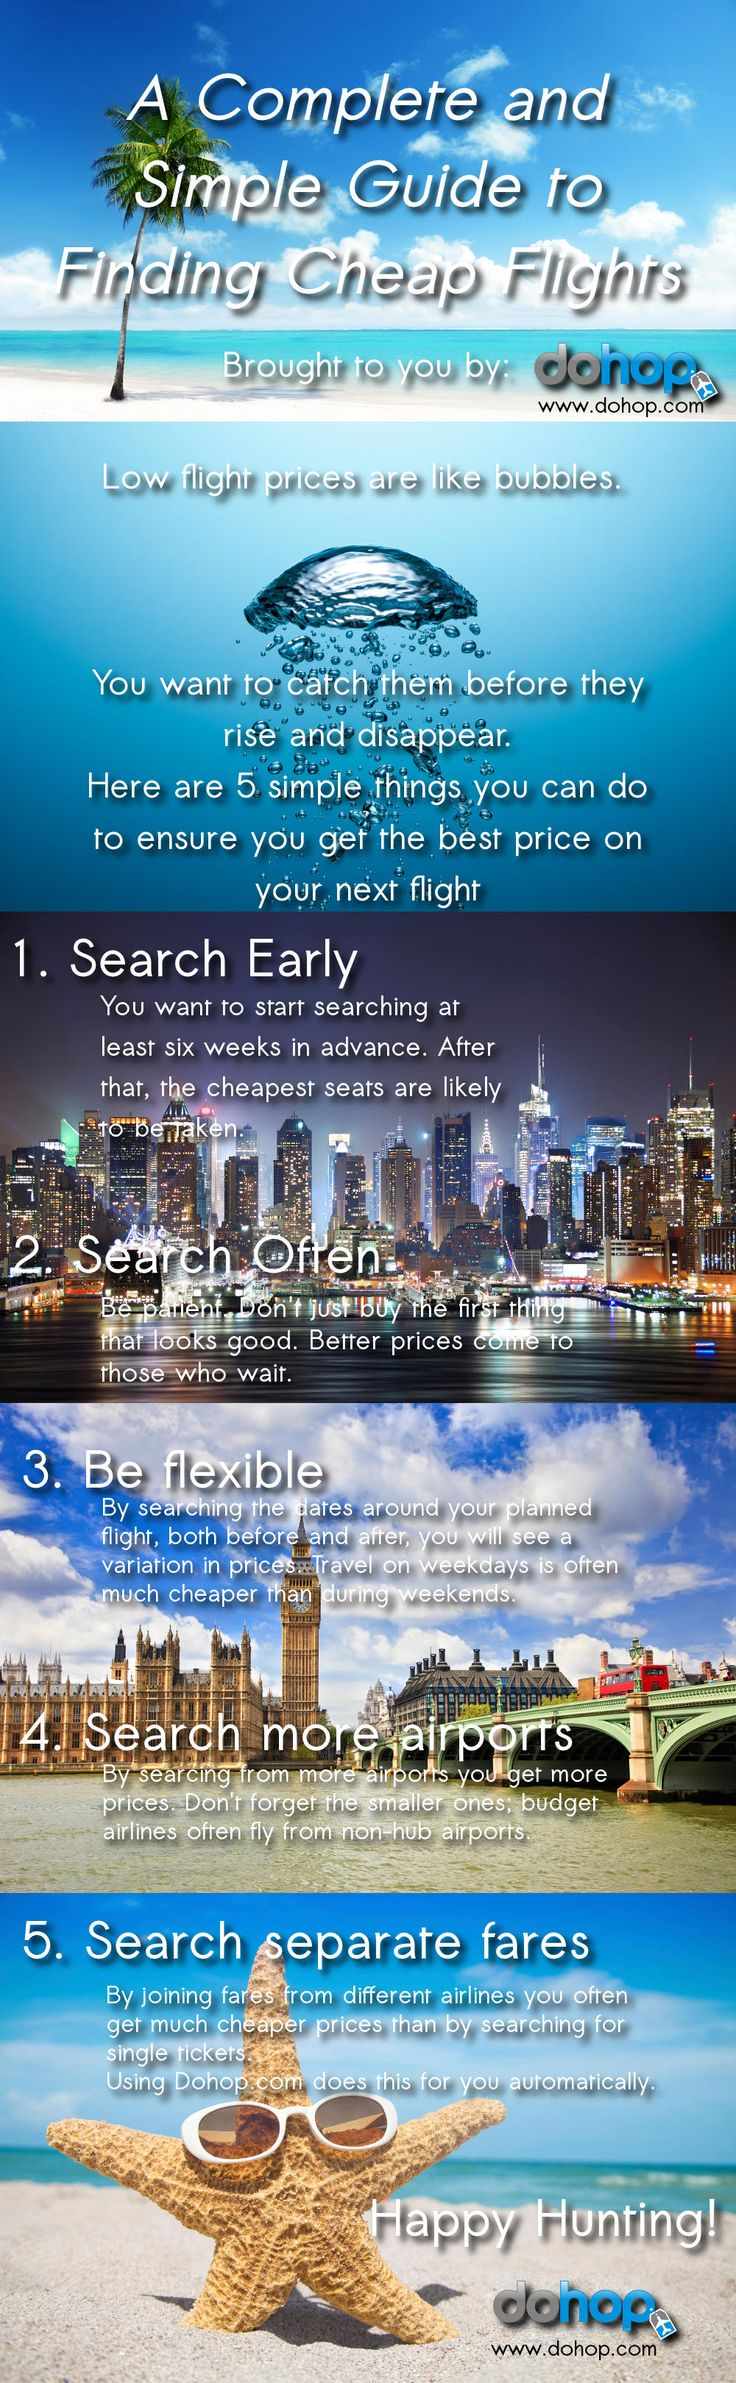 Dohop cheap flights hotels and rental cars compare prices for flights hotels and rental cars from hundreds of travel sites